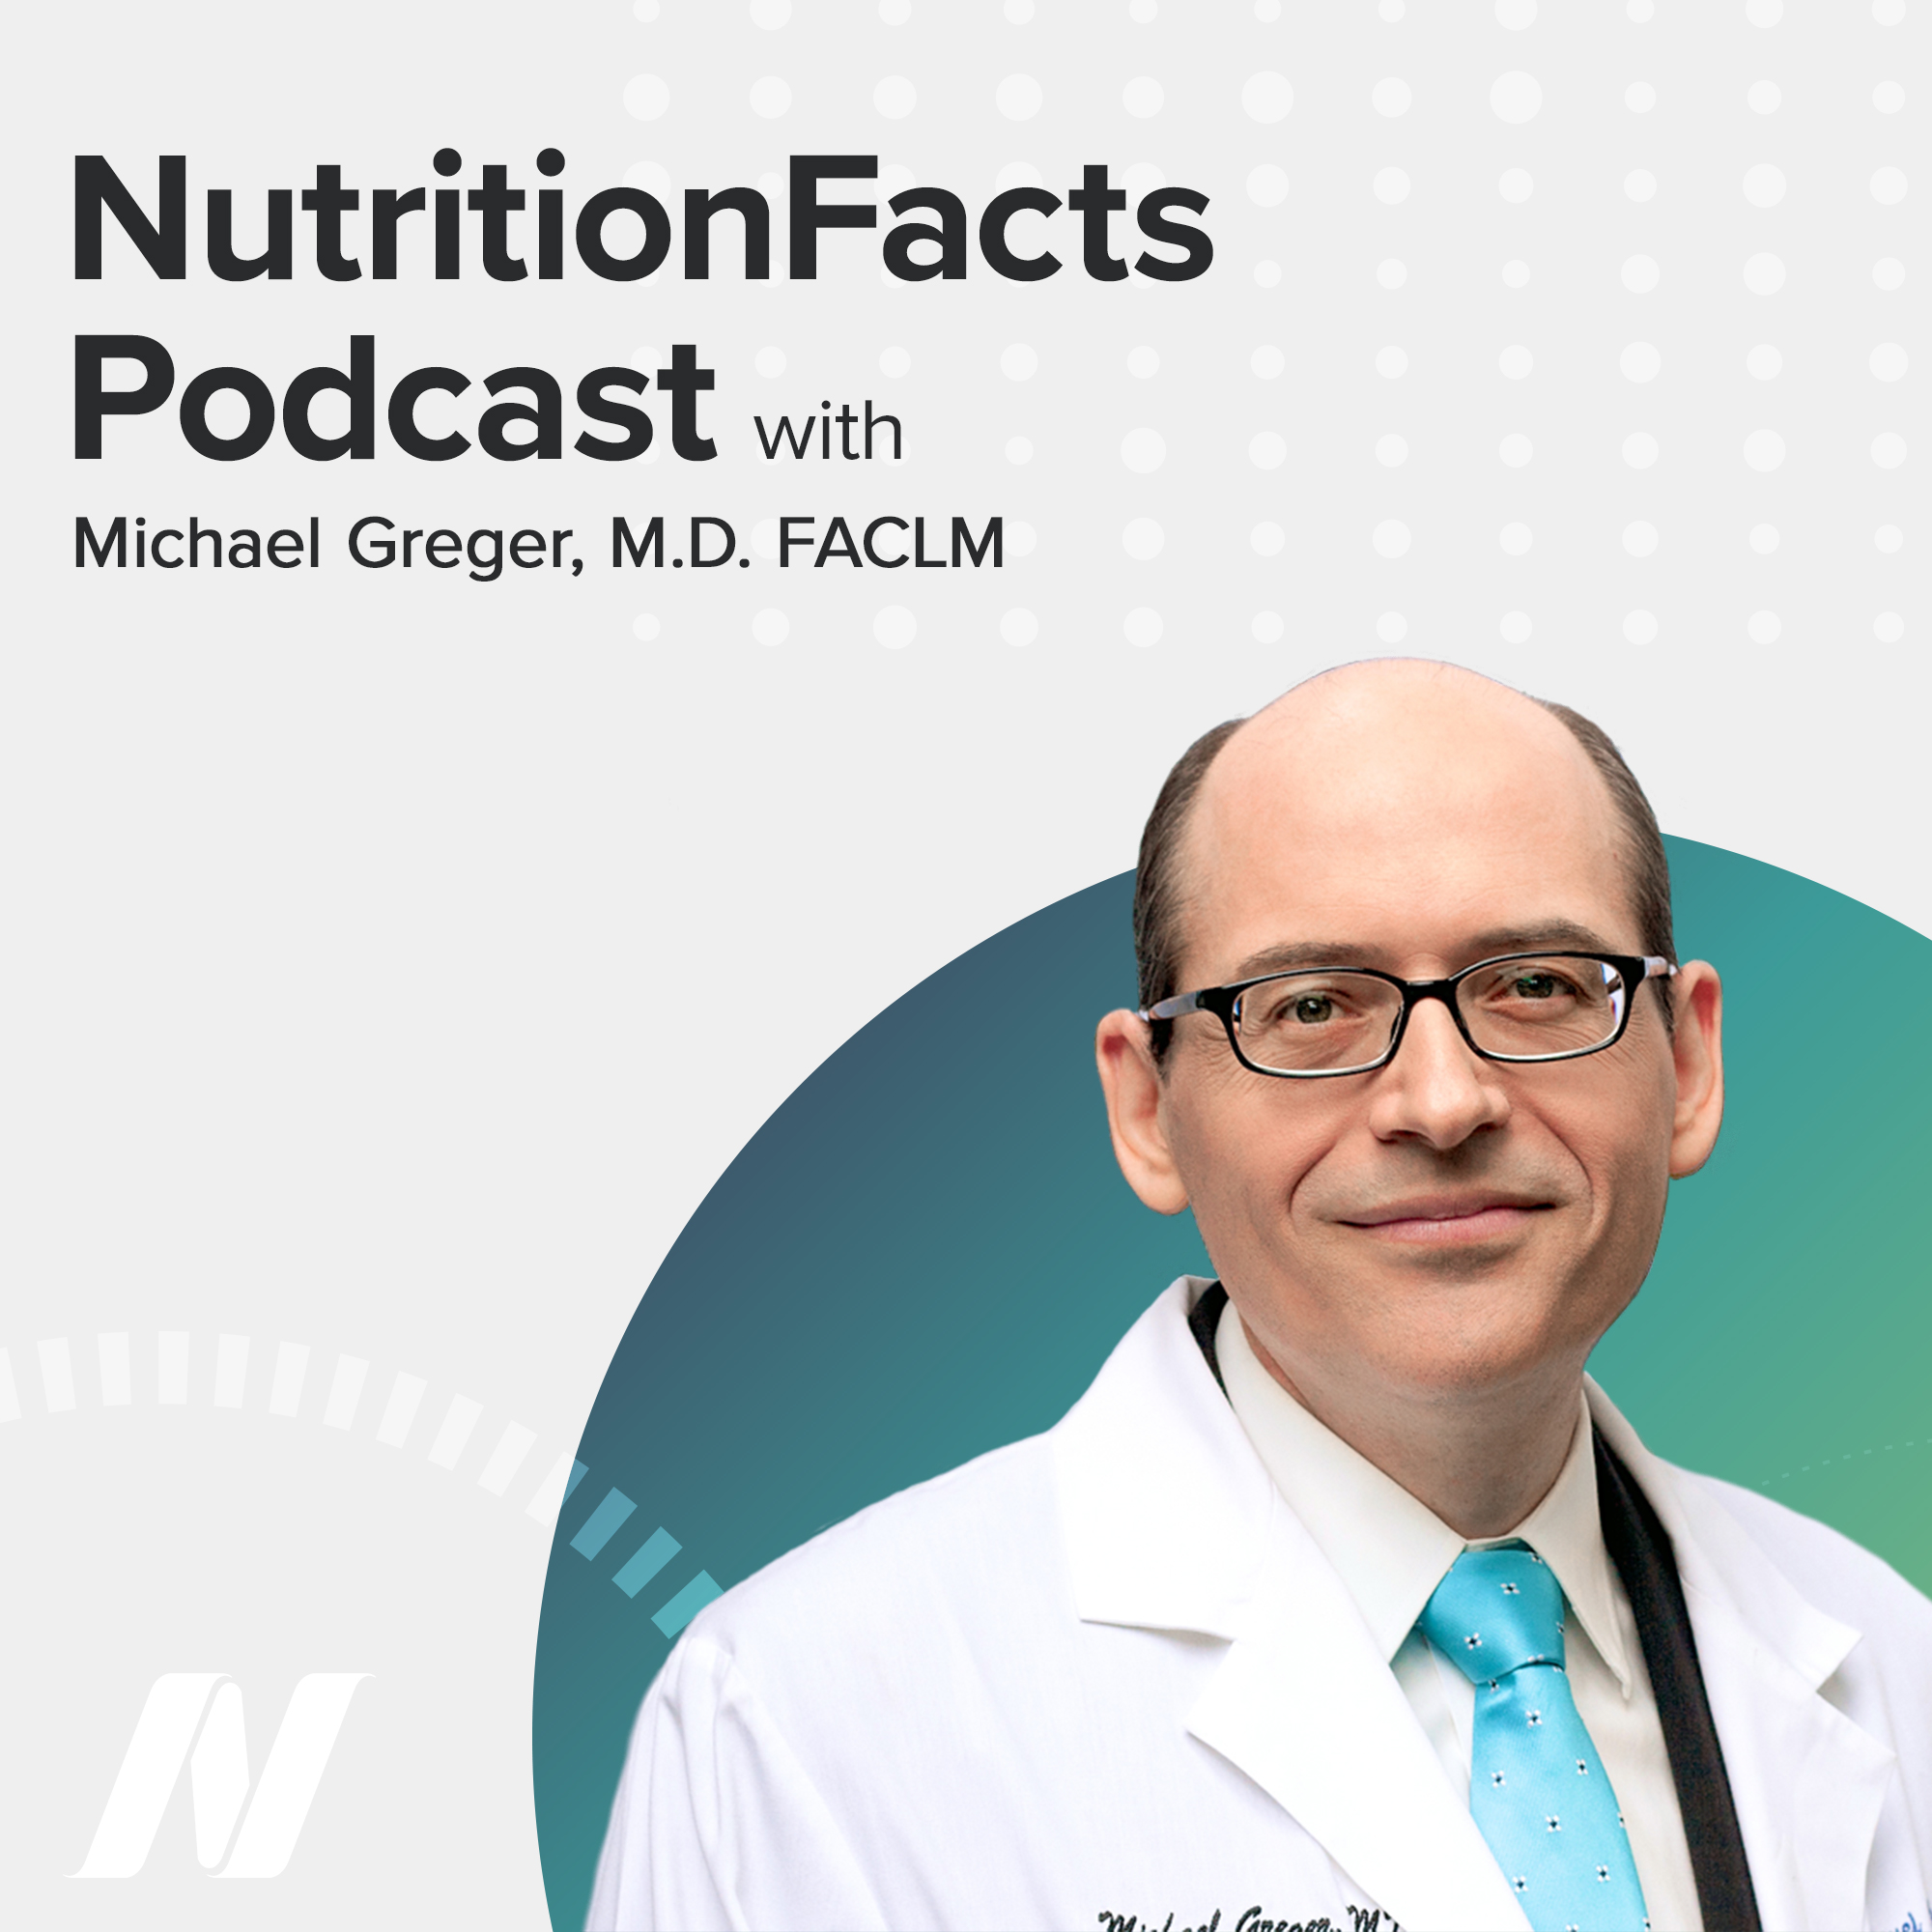 Nutrition Facts Podcast with Dr. Greger